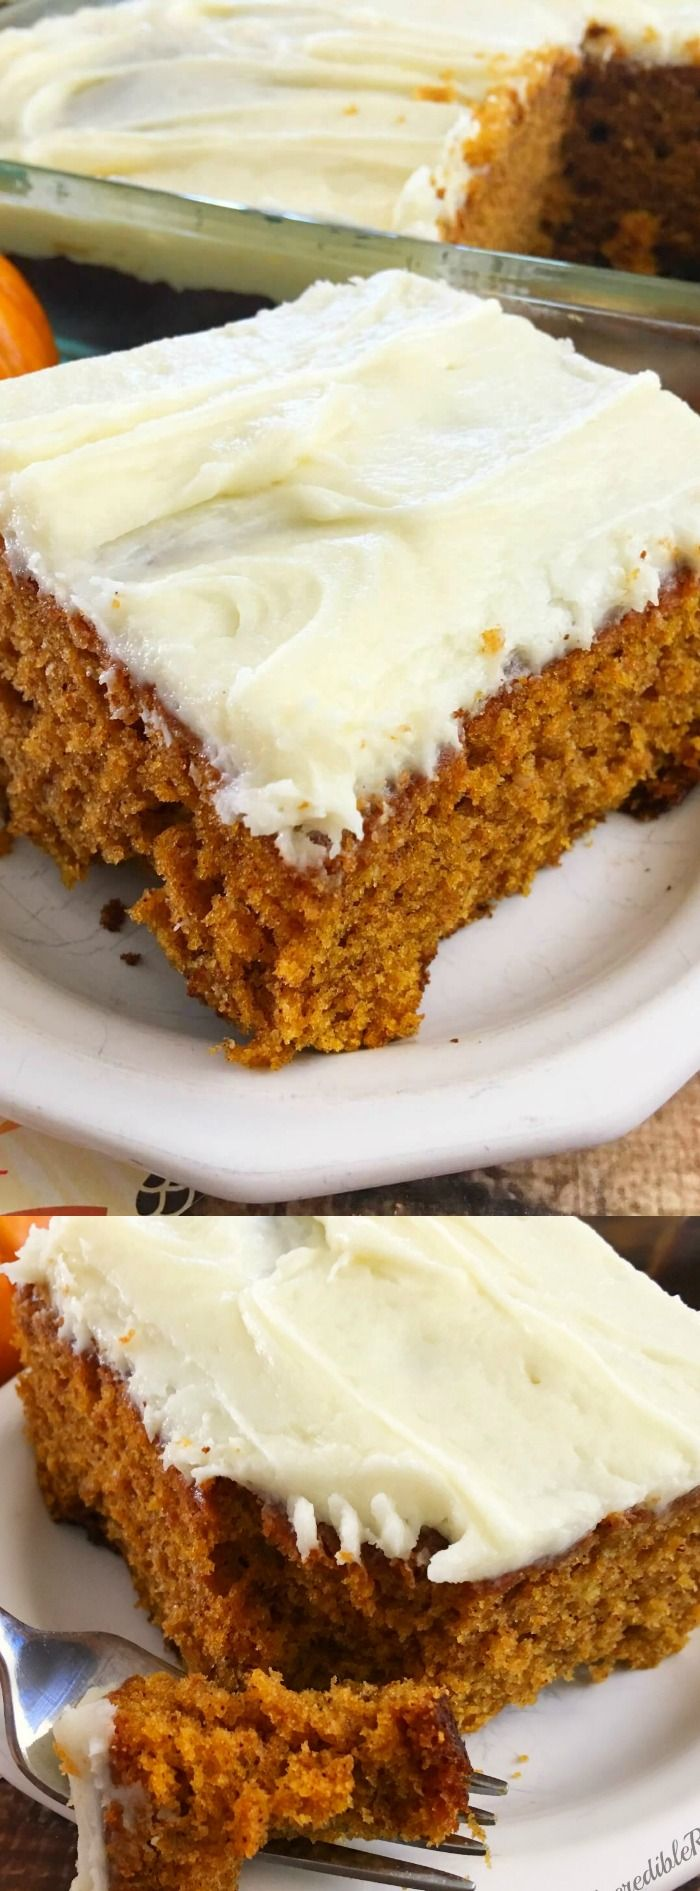 This Better than You Know What Pumpkin Cake from My Incredible Recipes is really going to knock your socks off! It is incredibly easy to make and will pair perfectly with your holiday dinner.